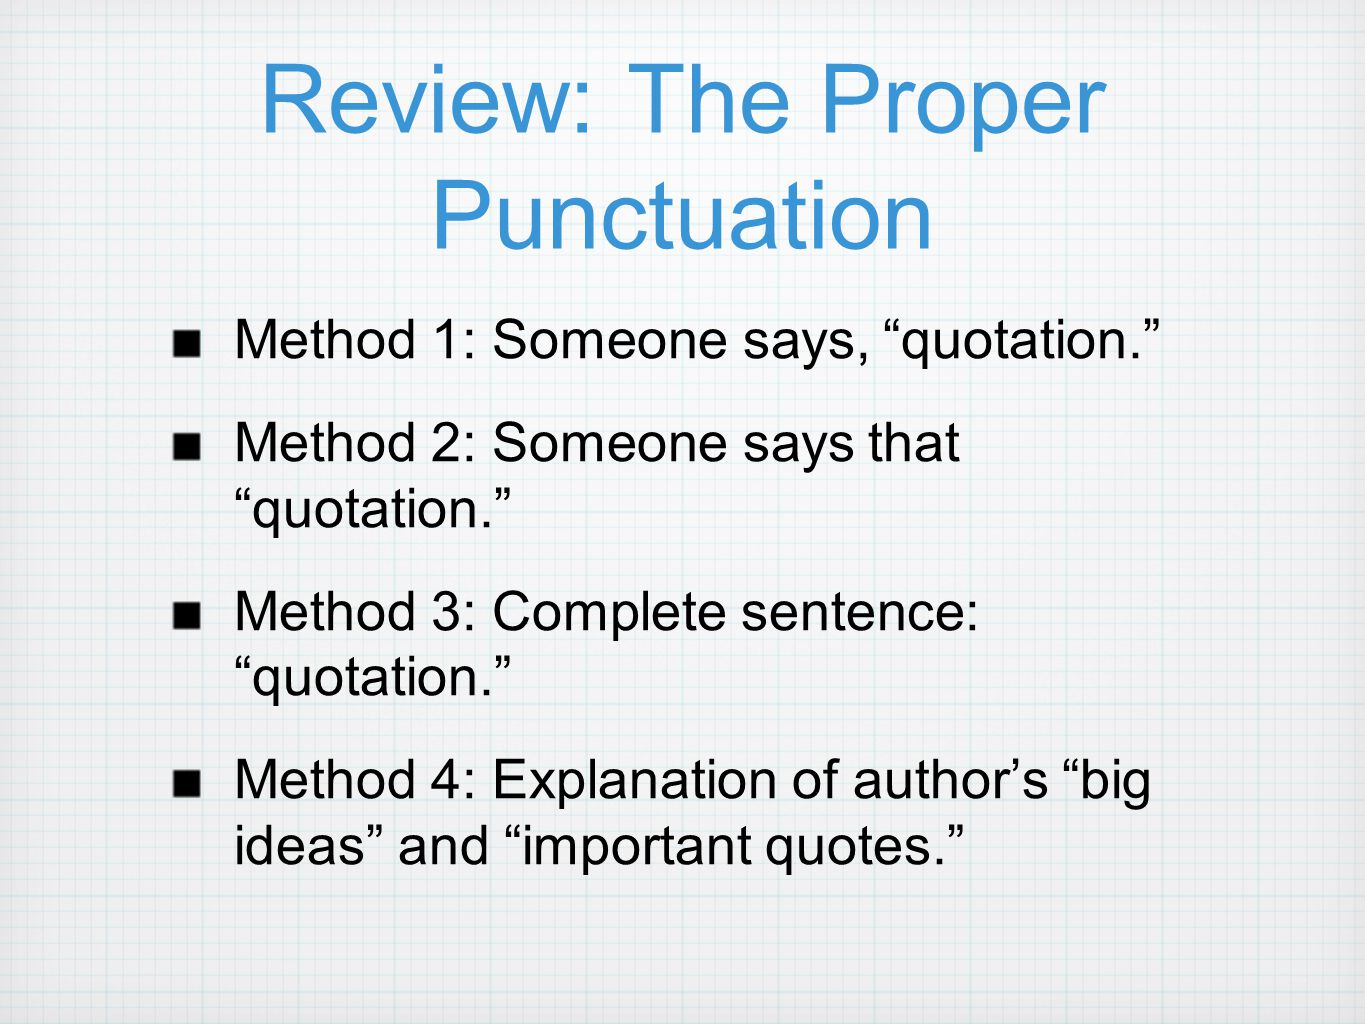 Quotes And Punctuation Integrating Quotes How To Do It. Ppt Video Online Download